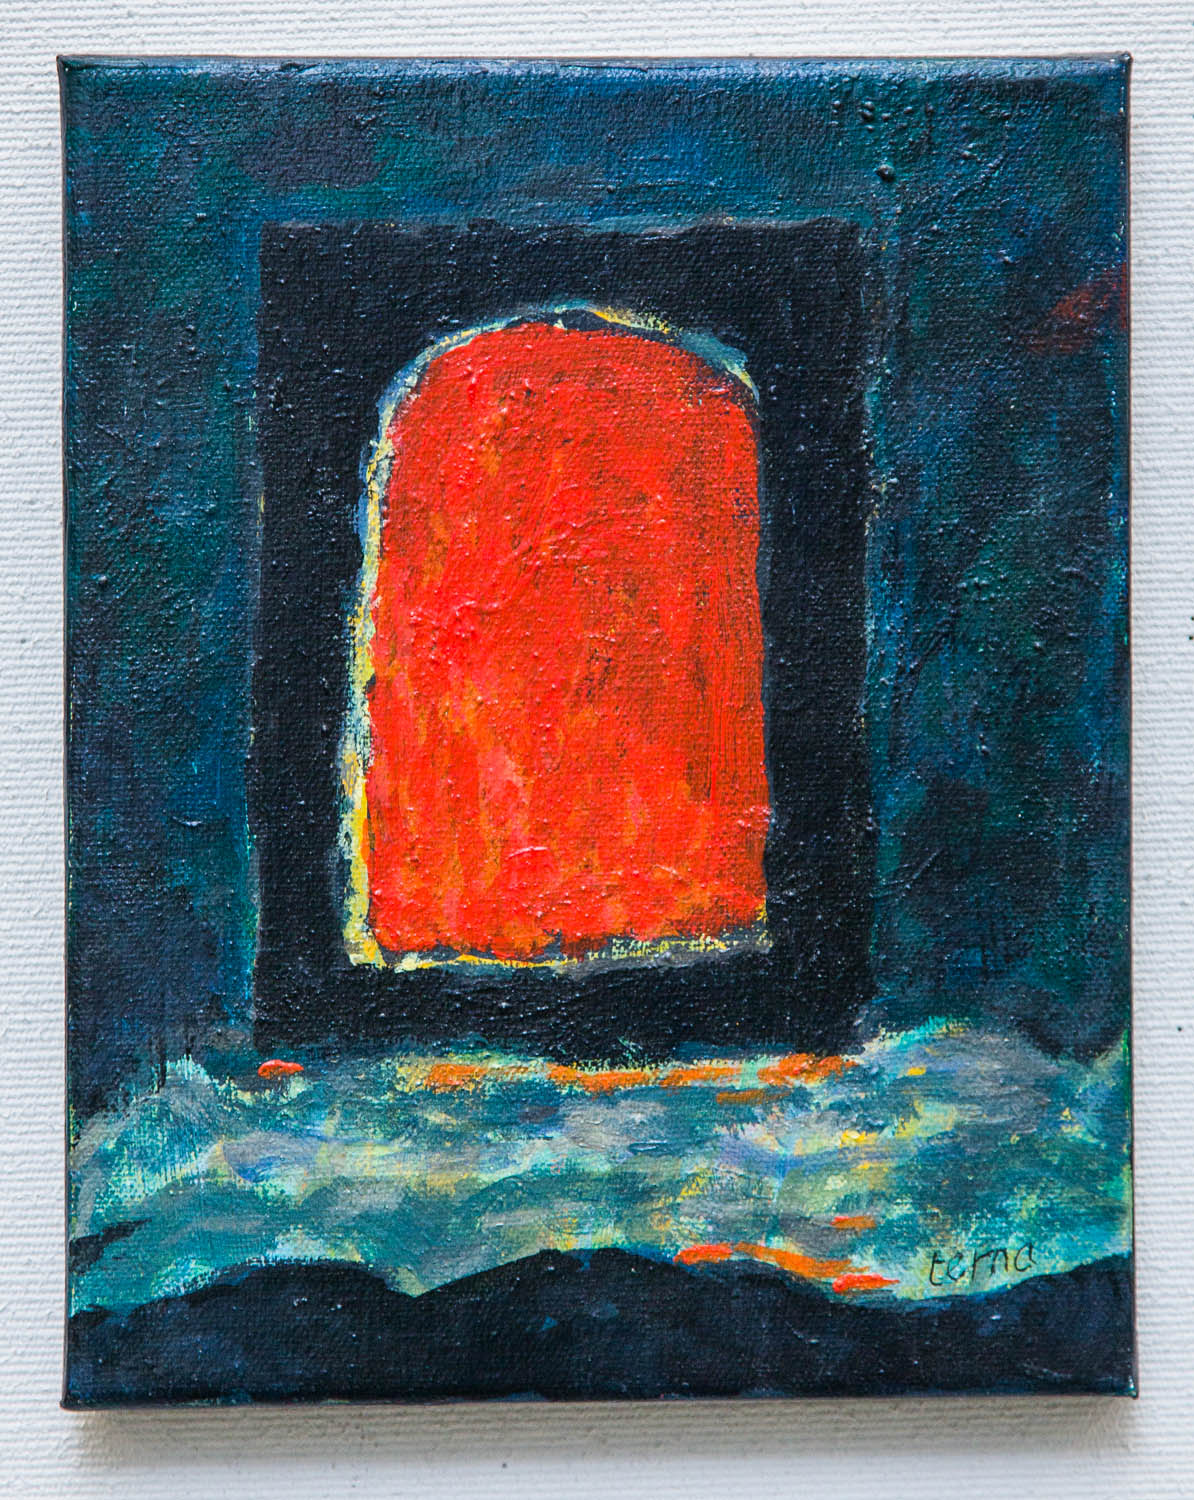 Portal 8 , 2015, Acrylic on cotton duck, 10 x 8 in